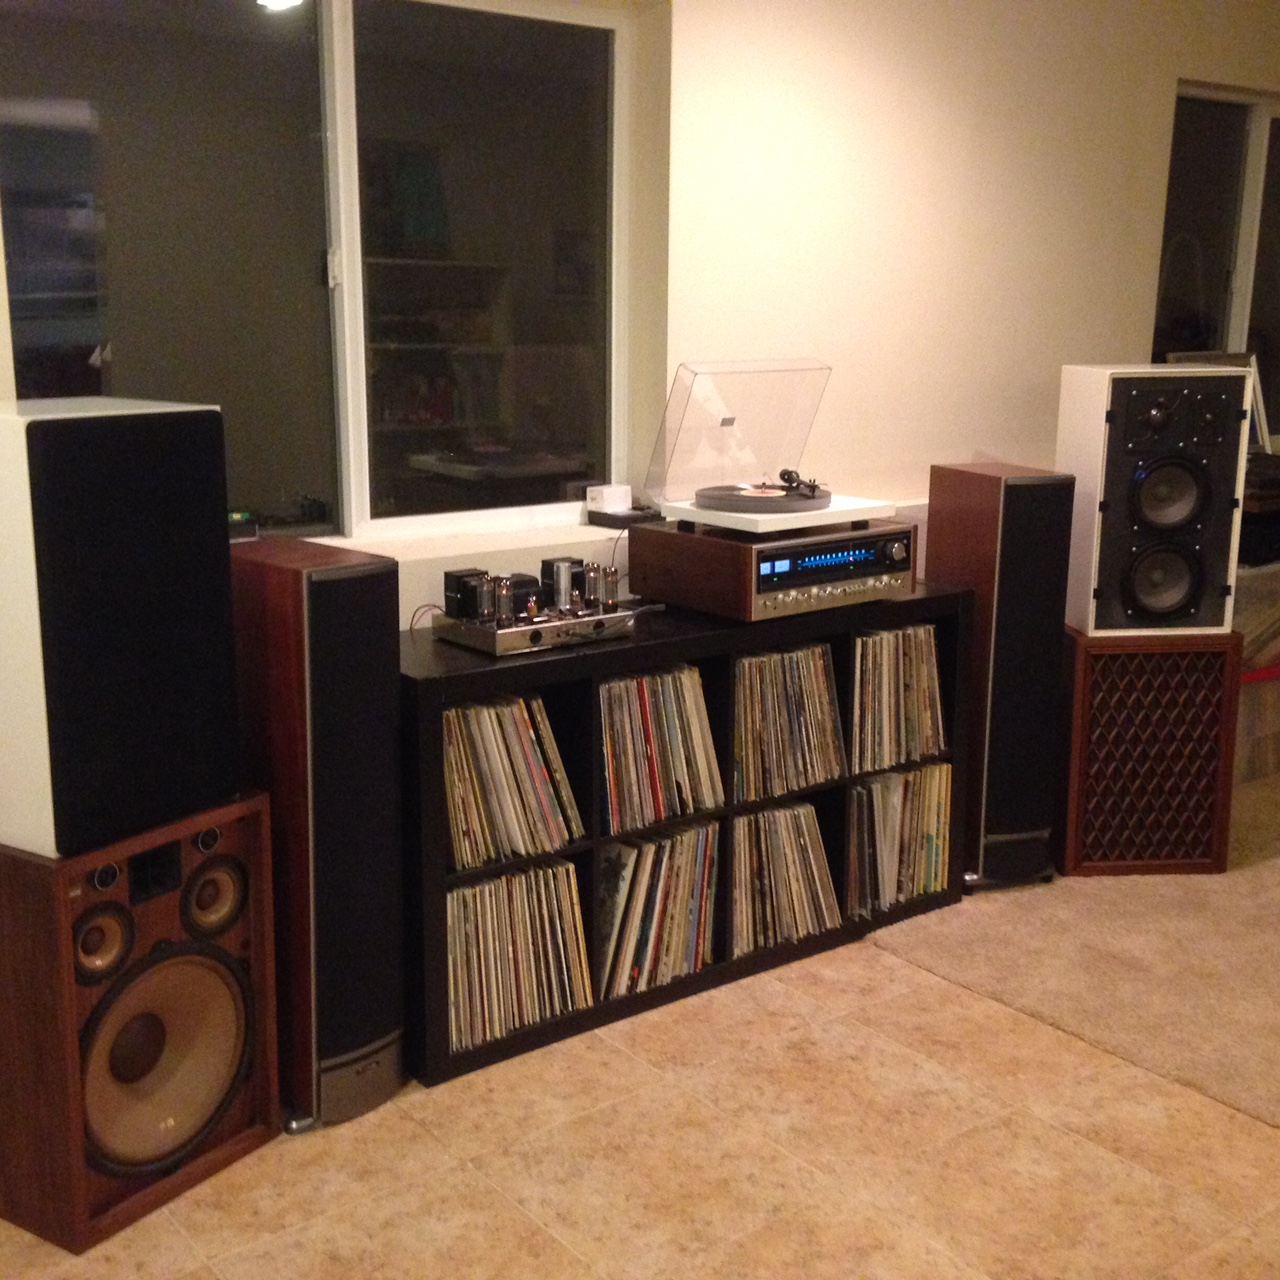 Brian S System:  Pioneer SX1010 running as pre-amp into Dynaco ST-70, Braun I810s speakers (or Pioneer CS 99a's, or Polk Rti 8's), Project Debut Carbon with acrylic platter.